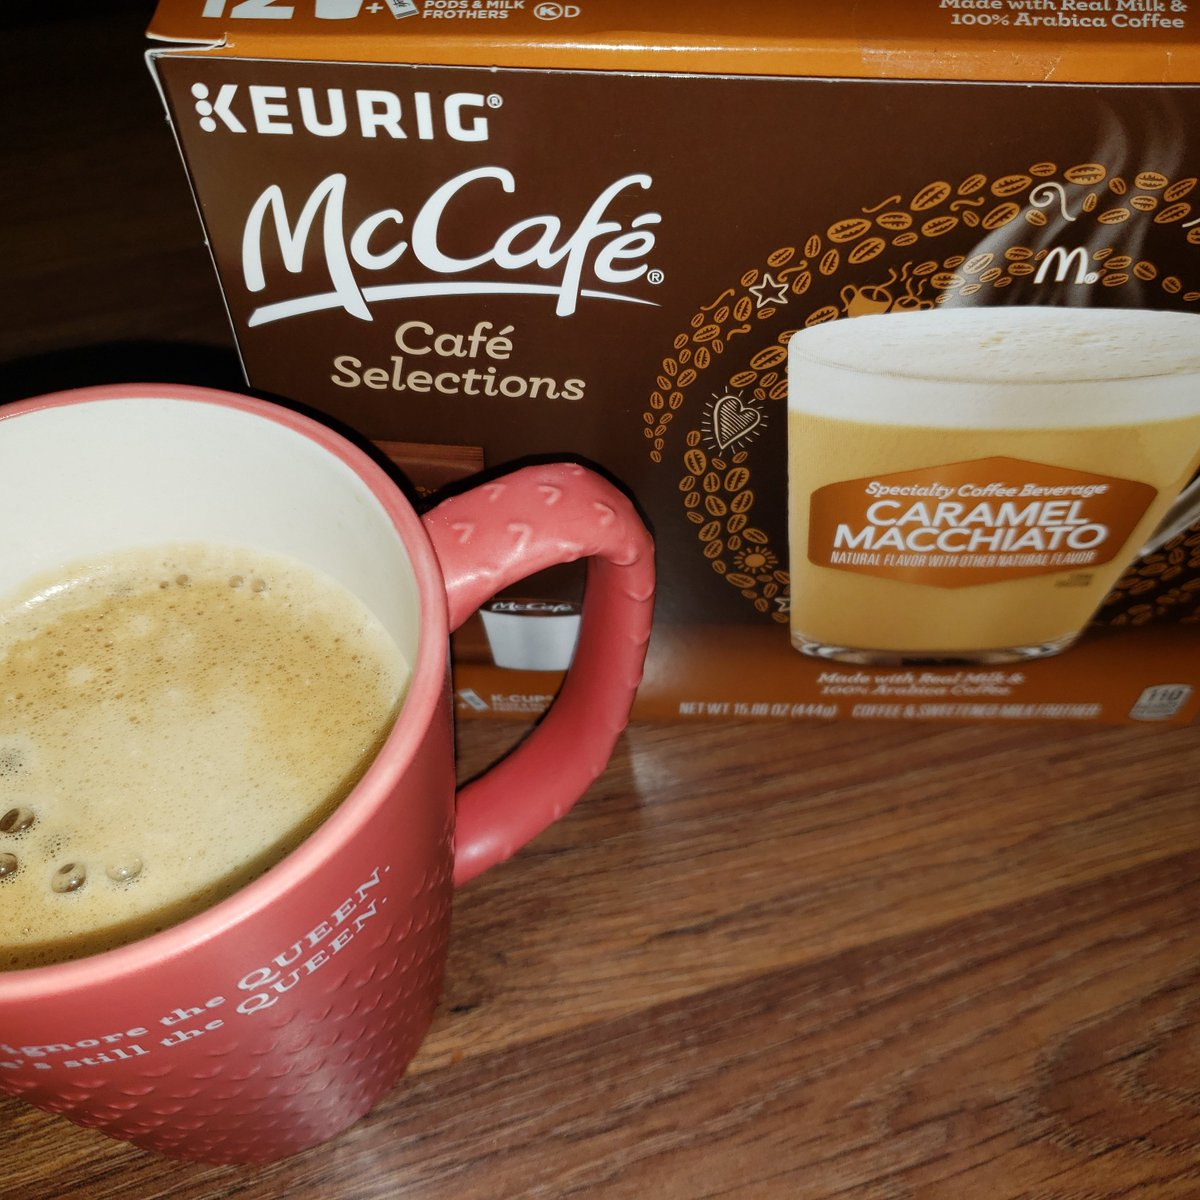 #ad Smells amazing right now! The McCafe caramel macchiato from Keurig is delicious. You can find this product and other flavors at @walmart Thanks @shespeaksup for letting me give this a try. ⁣⁣ ⁣⁣#SimplyDeliciousAtWalmart #coffee #keurig #McCafe  #coffeetime #macchiato<br>http://pic.twitter.com/QX3WSLMBUz